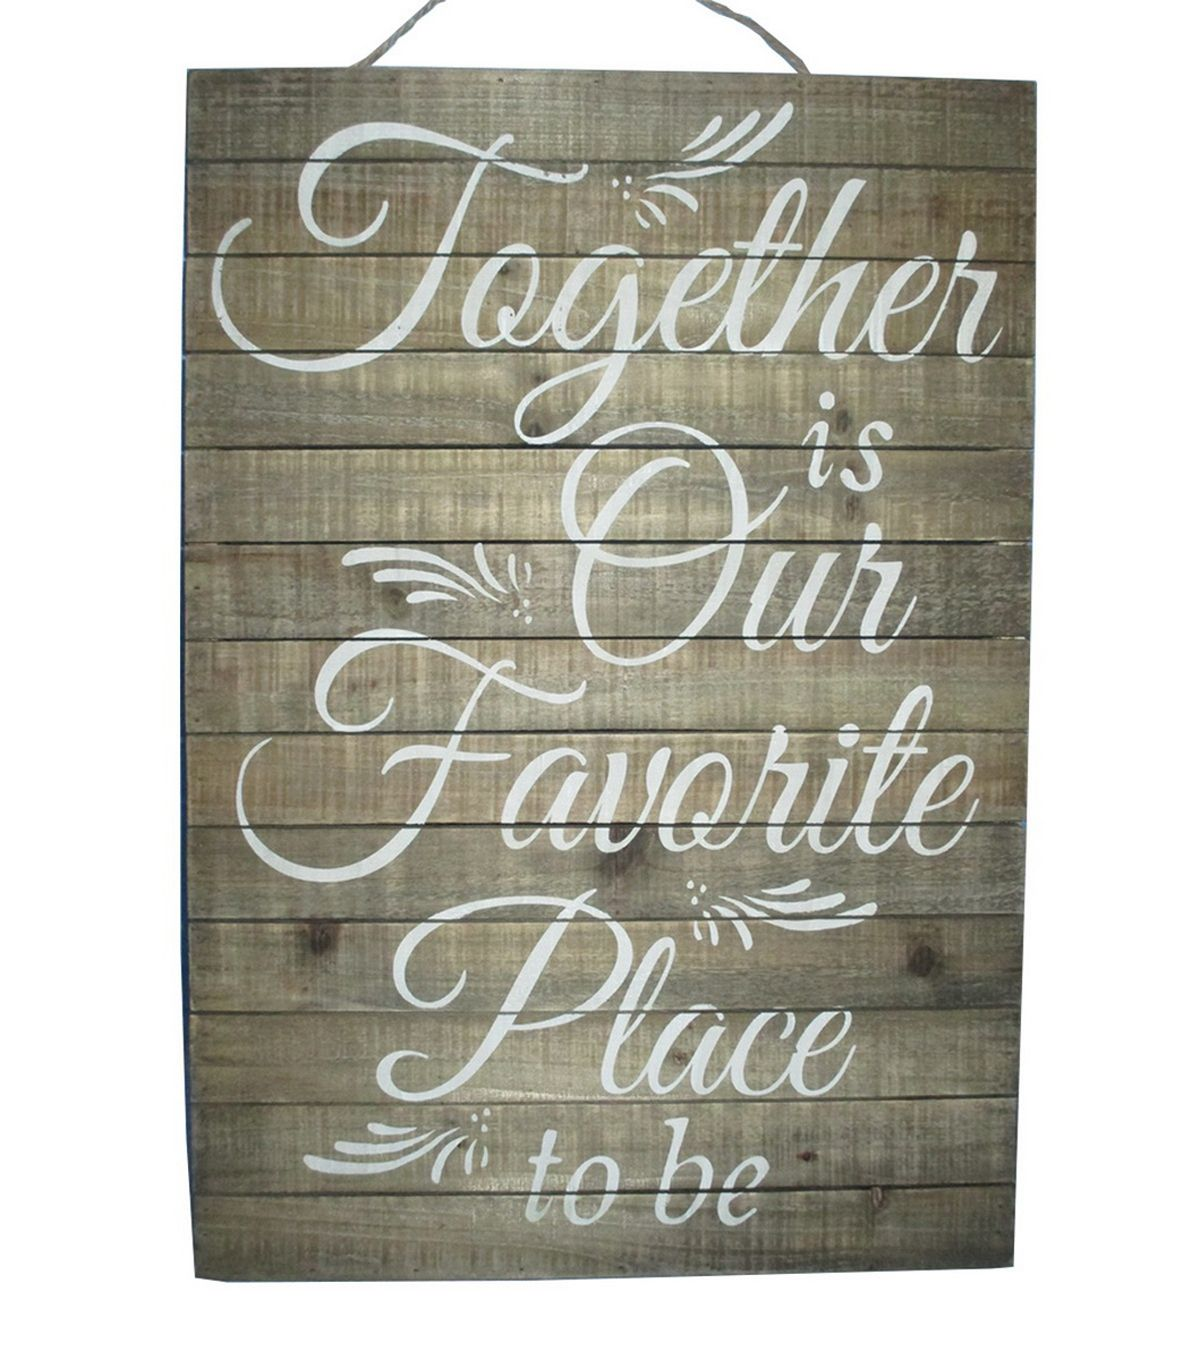 Fall into color together favorite place wall decor cricut fall into color together favorite place wall decor amipublicfo Images